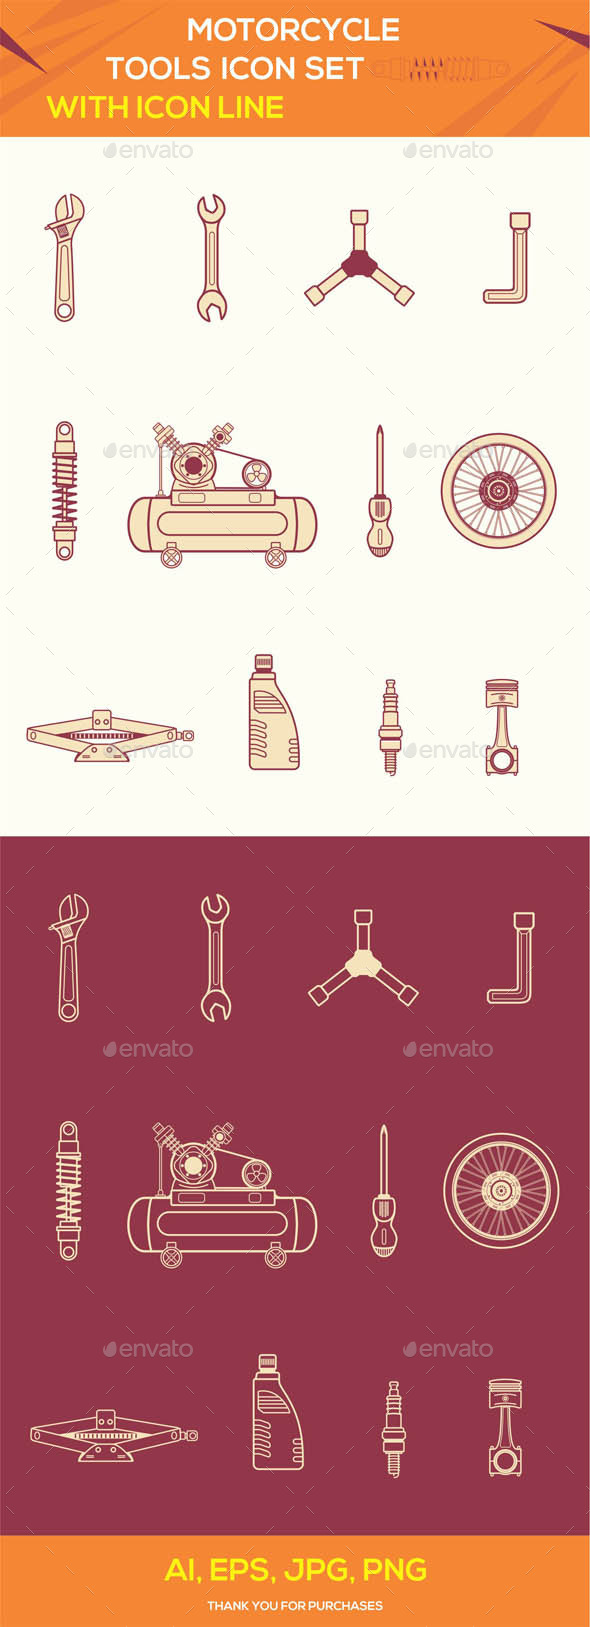 Motorcycle Tools Icon Set - Technology Icons